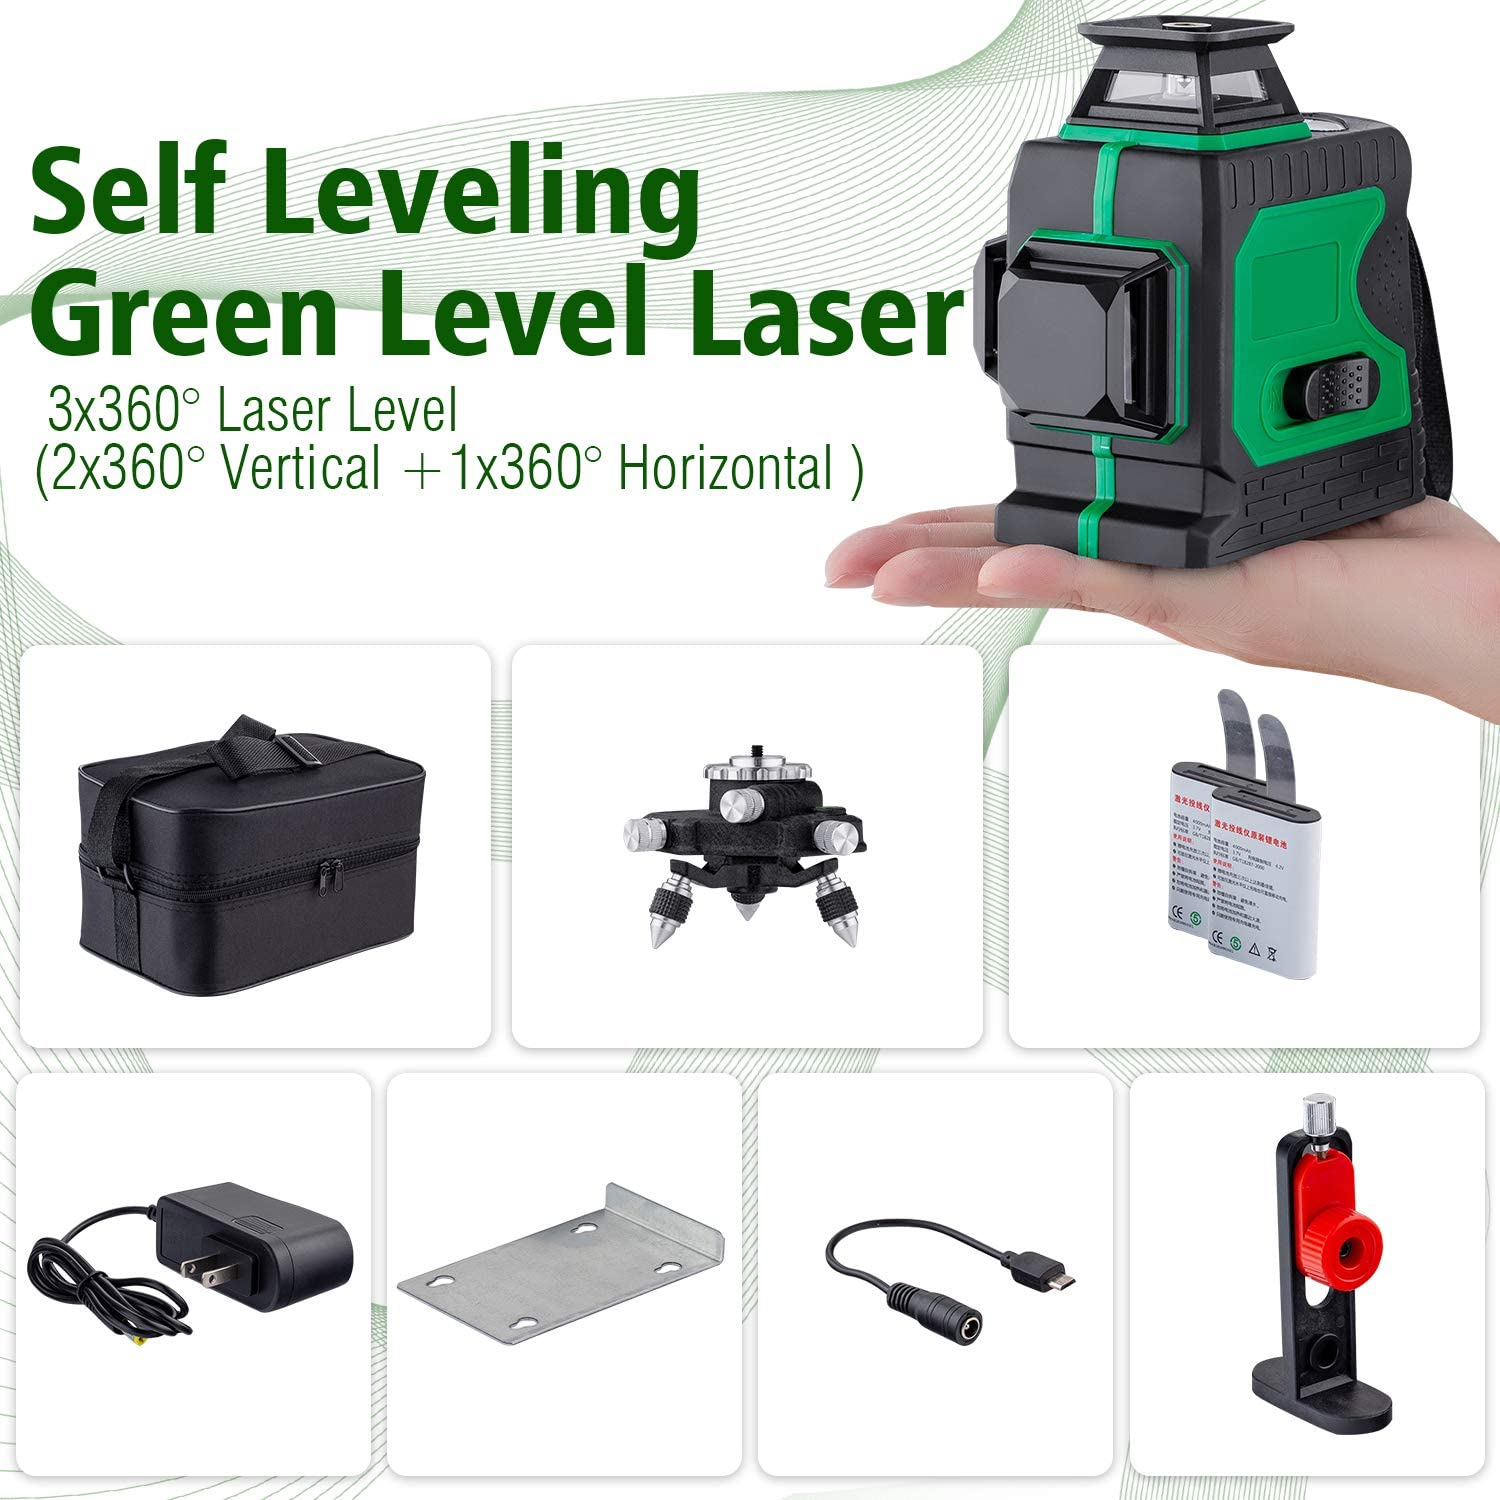 HUTACT 3D Green Laser Level Rechargeable 12 Lines Self-Leveling Laser Level with Pulse Mode Three Plane Cross Line 3x360/° Rotary Laser Level Laser Leveler Tool for Indoor /& Outdoor